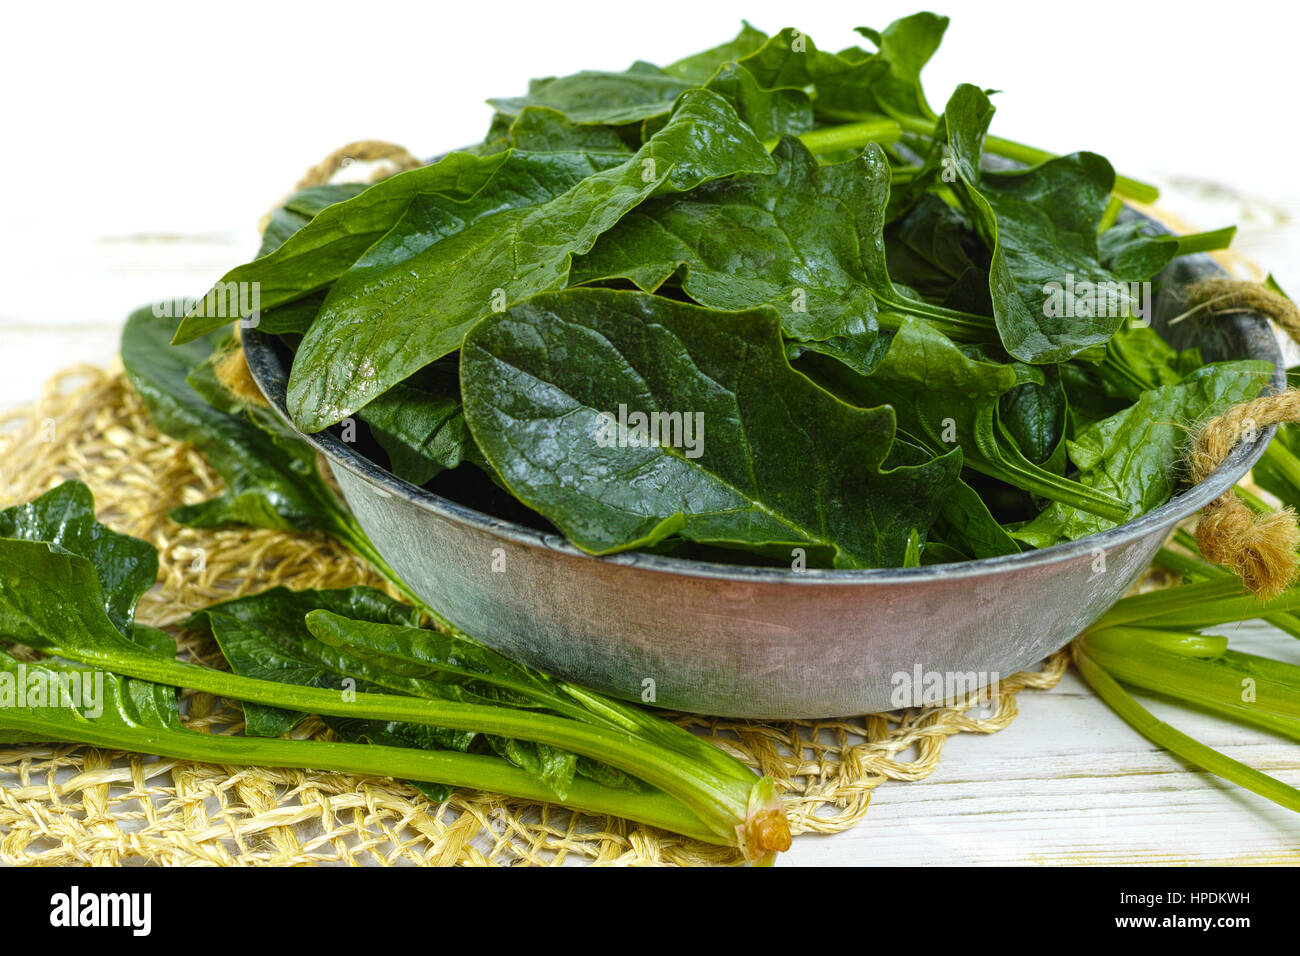 Fresh green Spinach leaves - diet and health concept, weight